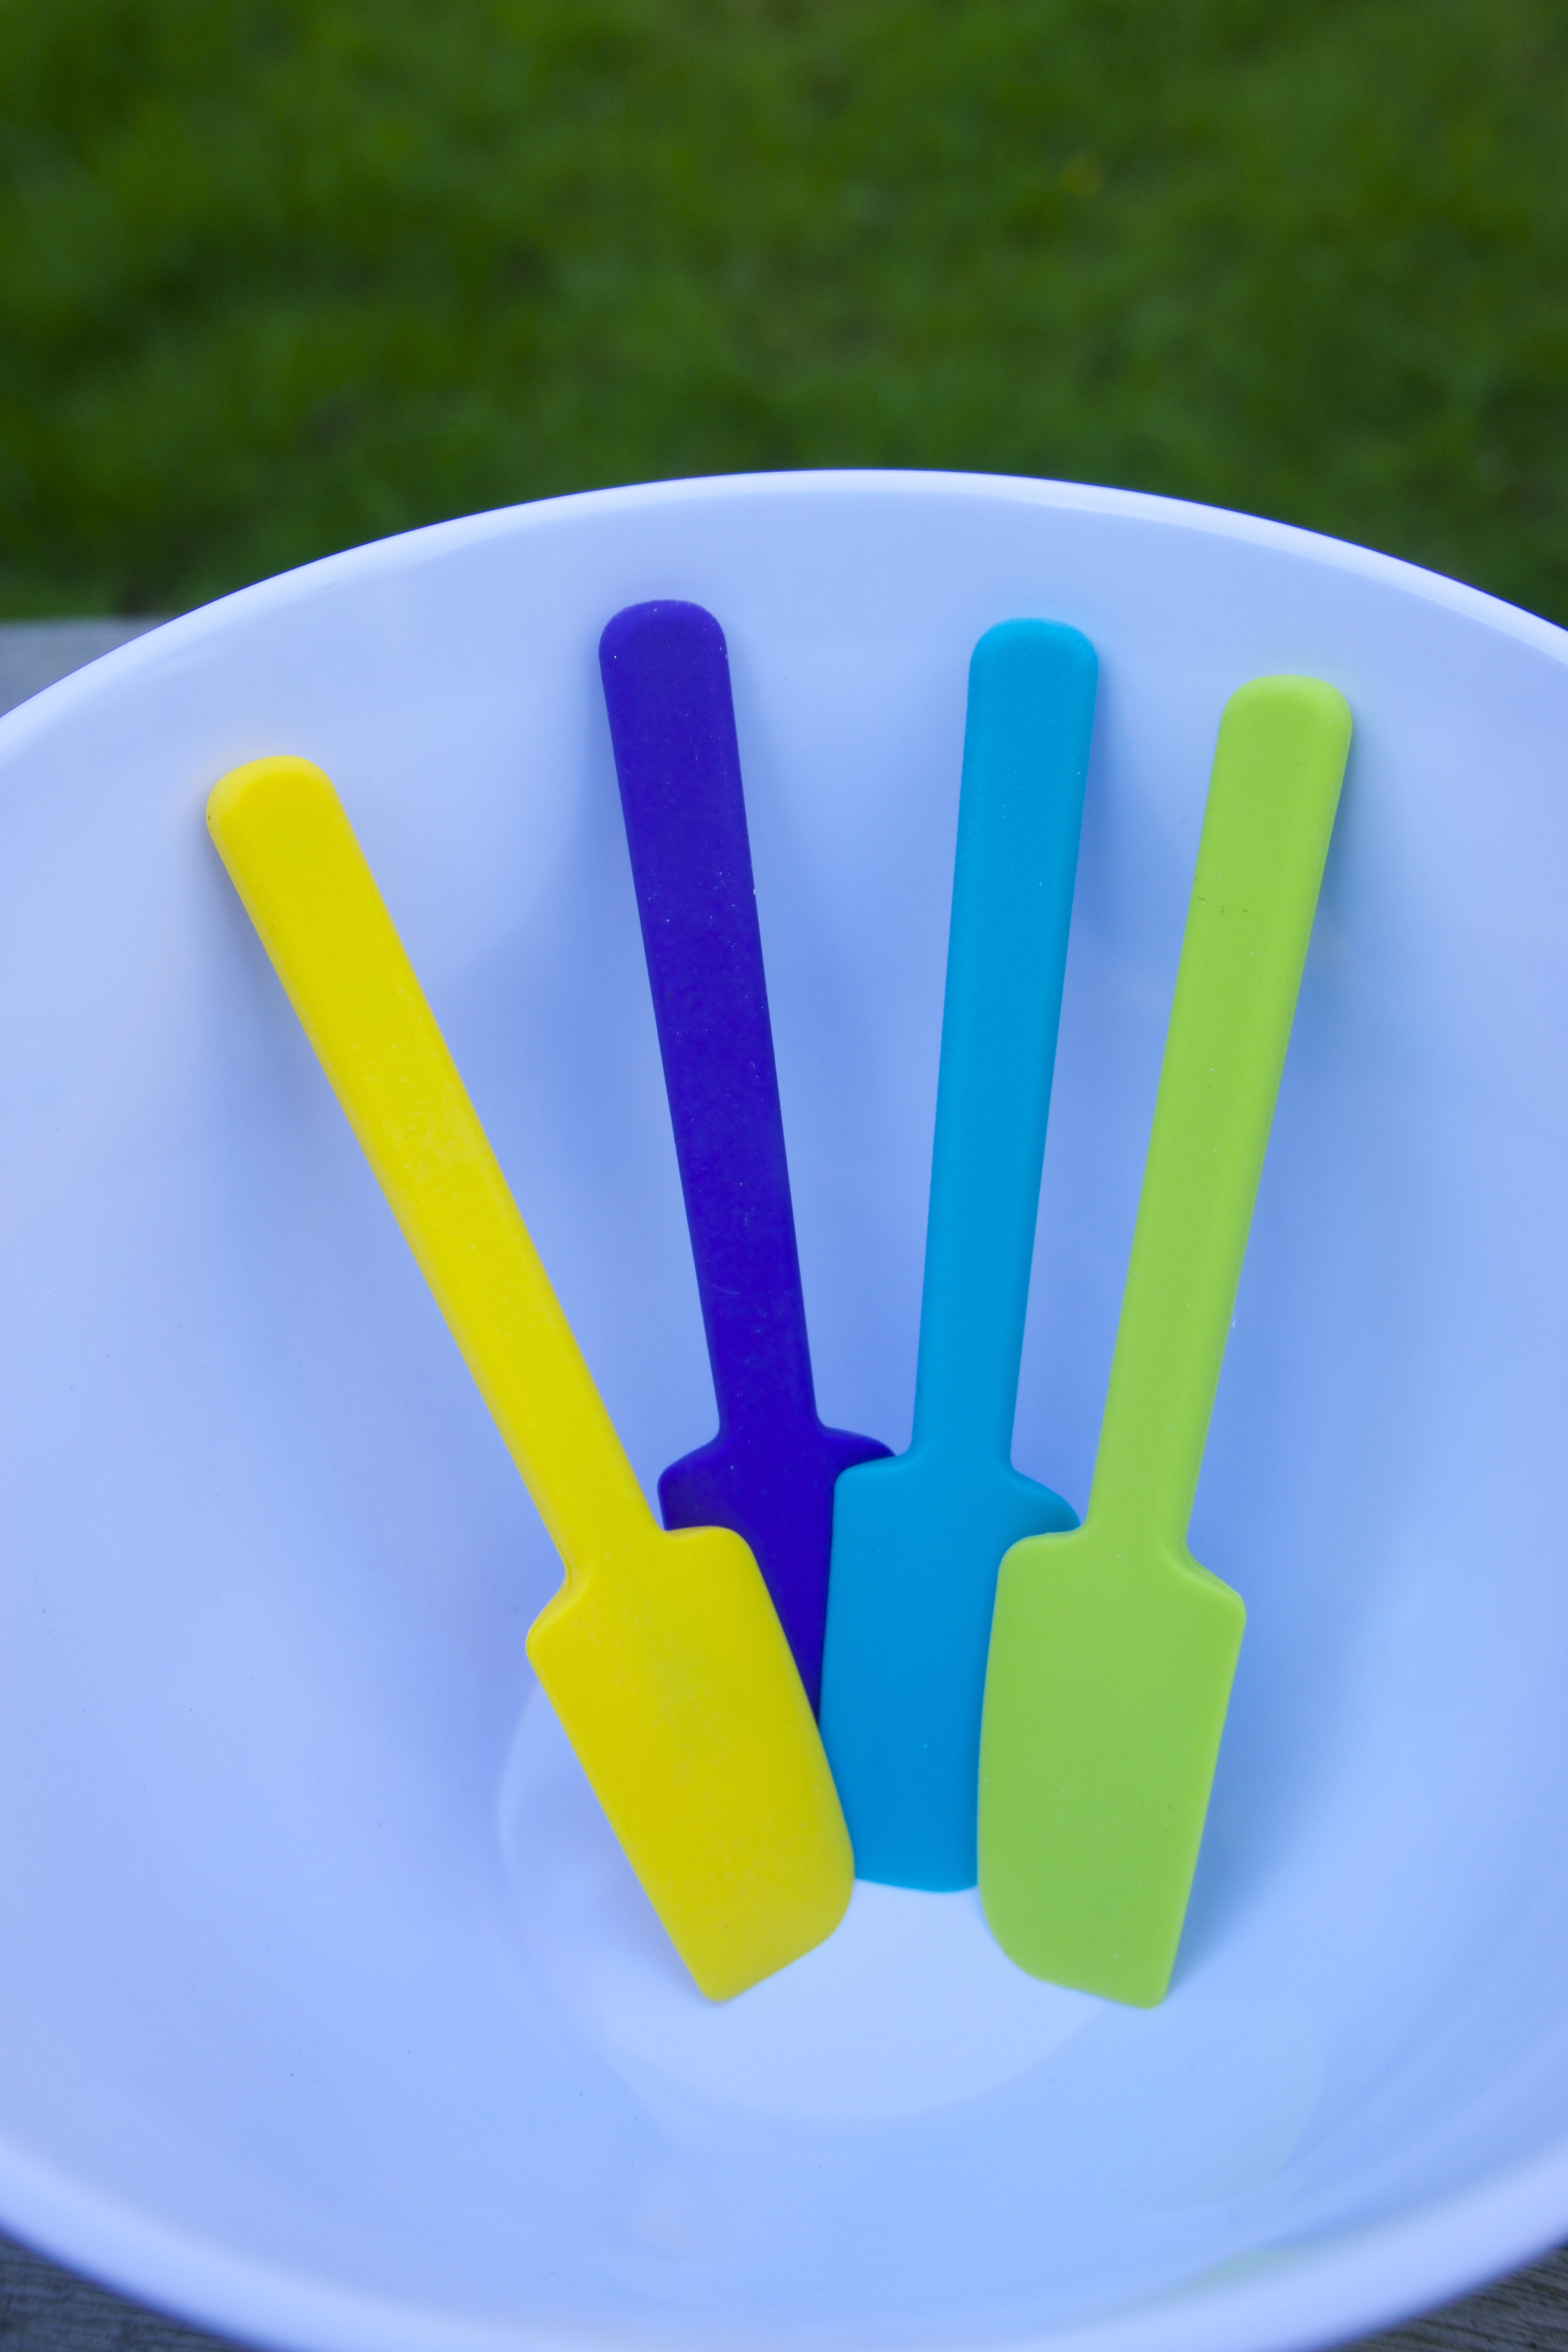 Mini Spatula - Vibrant Home    Donated for charity event - chose to  review